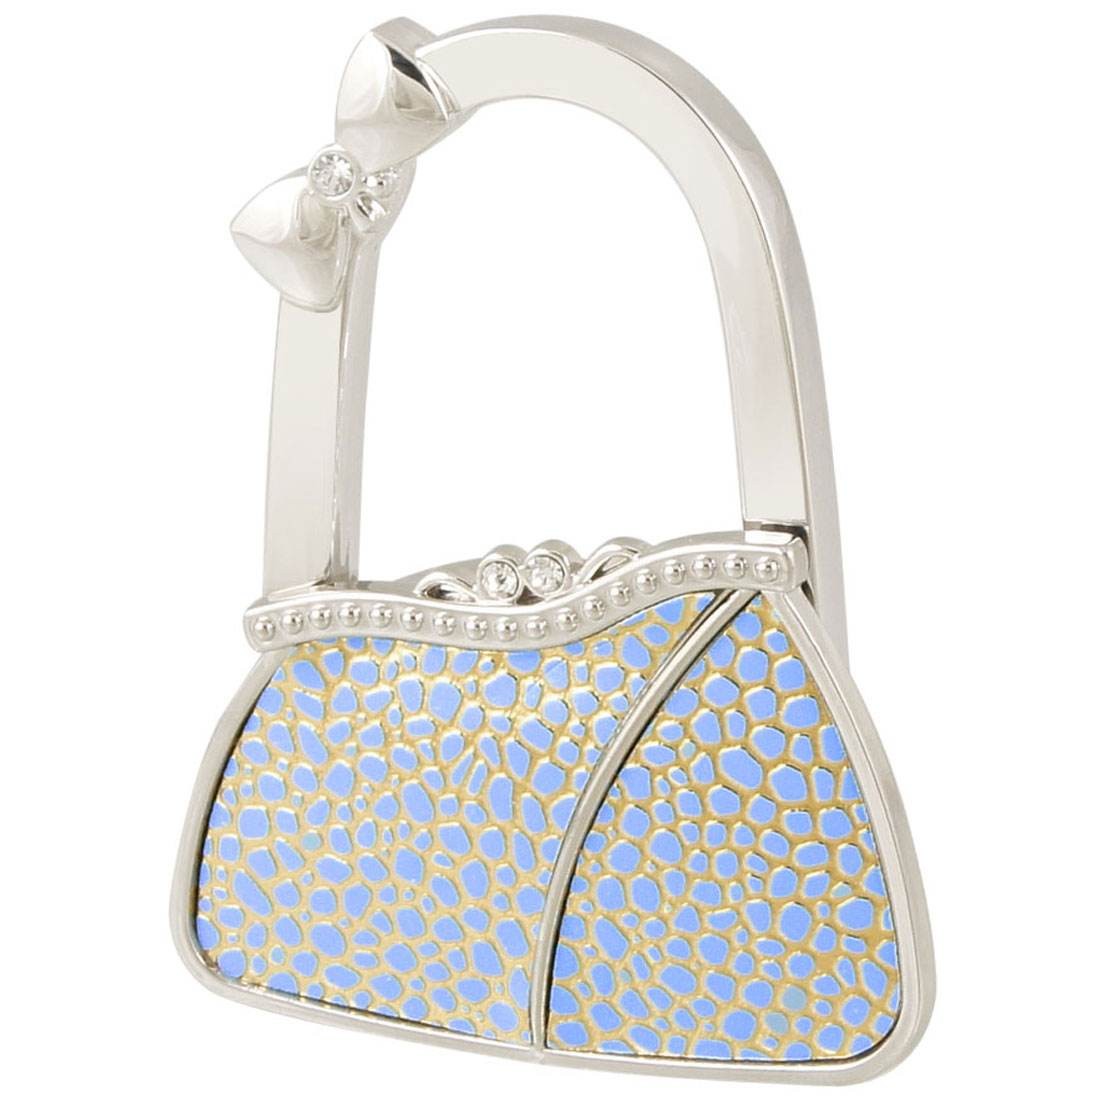 Rhinestone Decor Bag Design Folding Handbag Hook Sky Blue Gold Tone